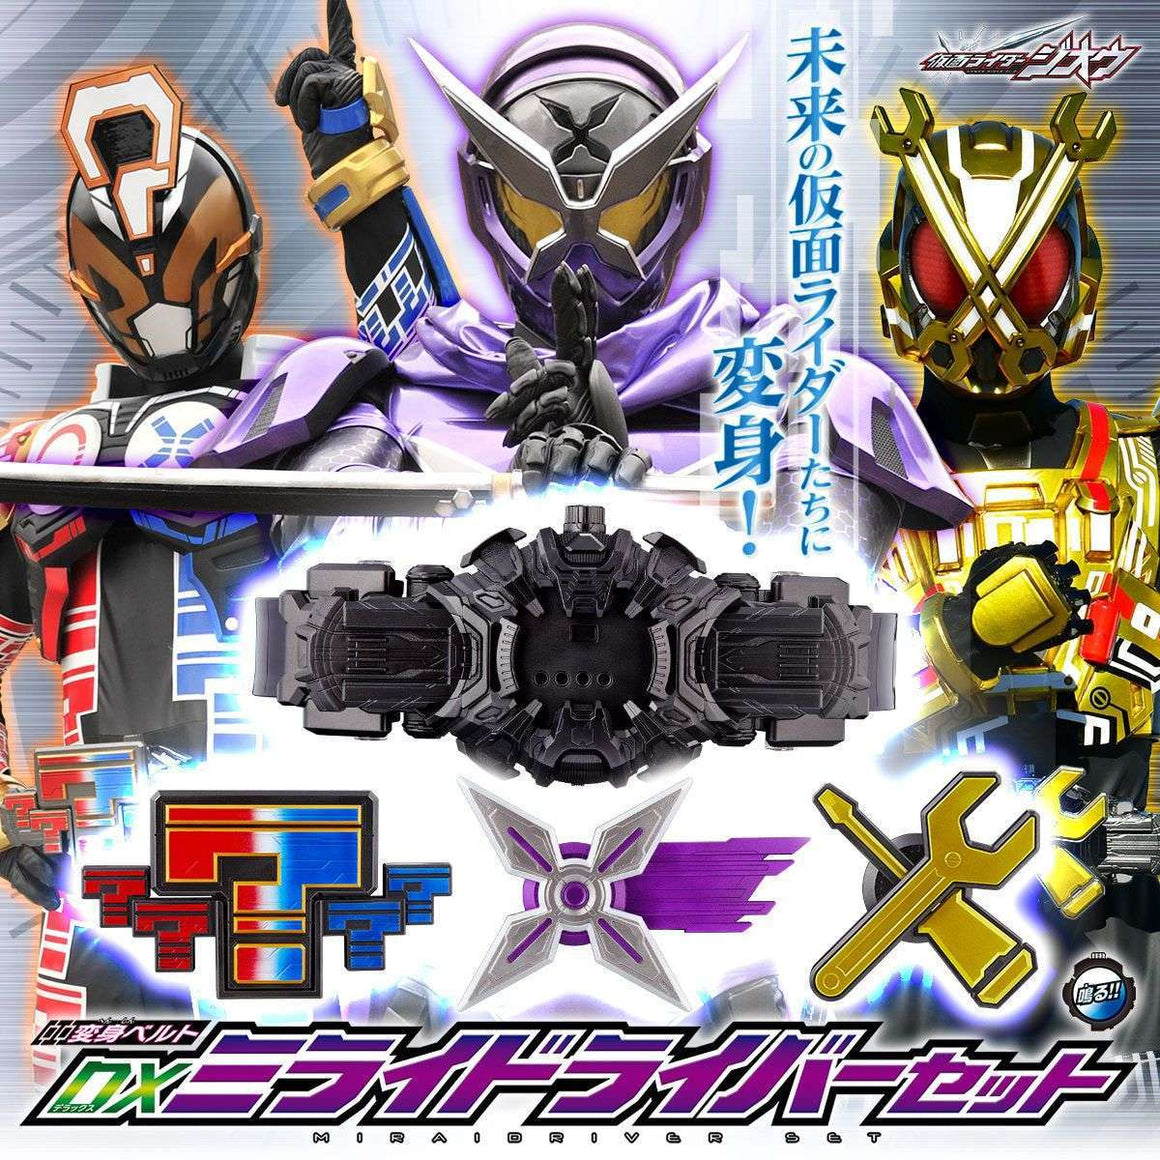 CSTOYS INTERNATIONAL:[Jul. 2019] Premium Bandai Exclusive - Kamen Rider Zi-O DX Mirai Driver Set (Feb. 24th - Mar. 10th)